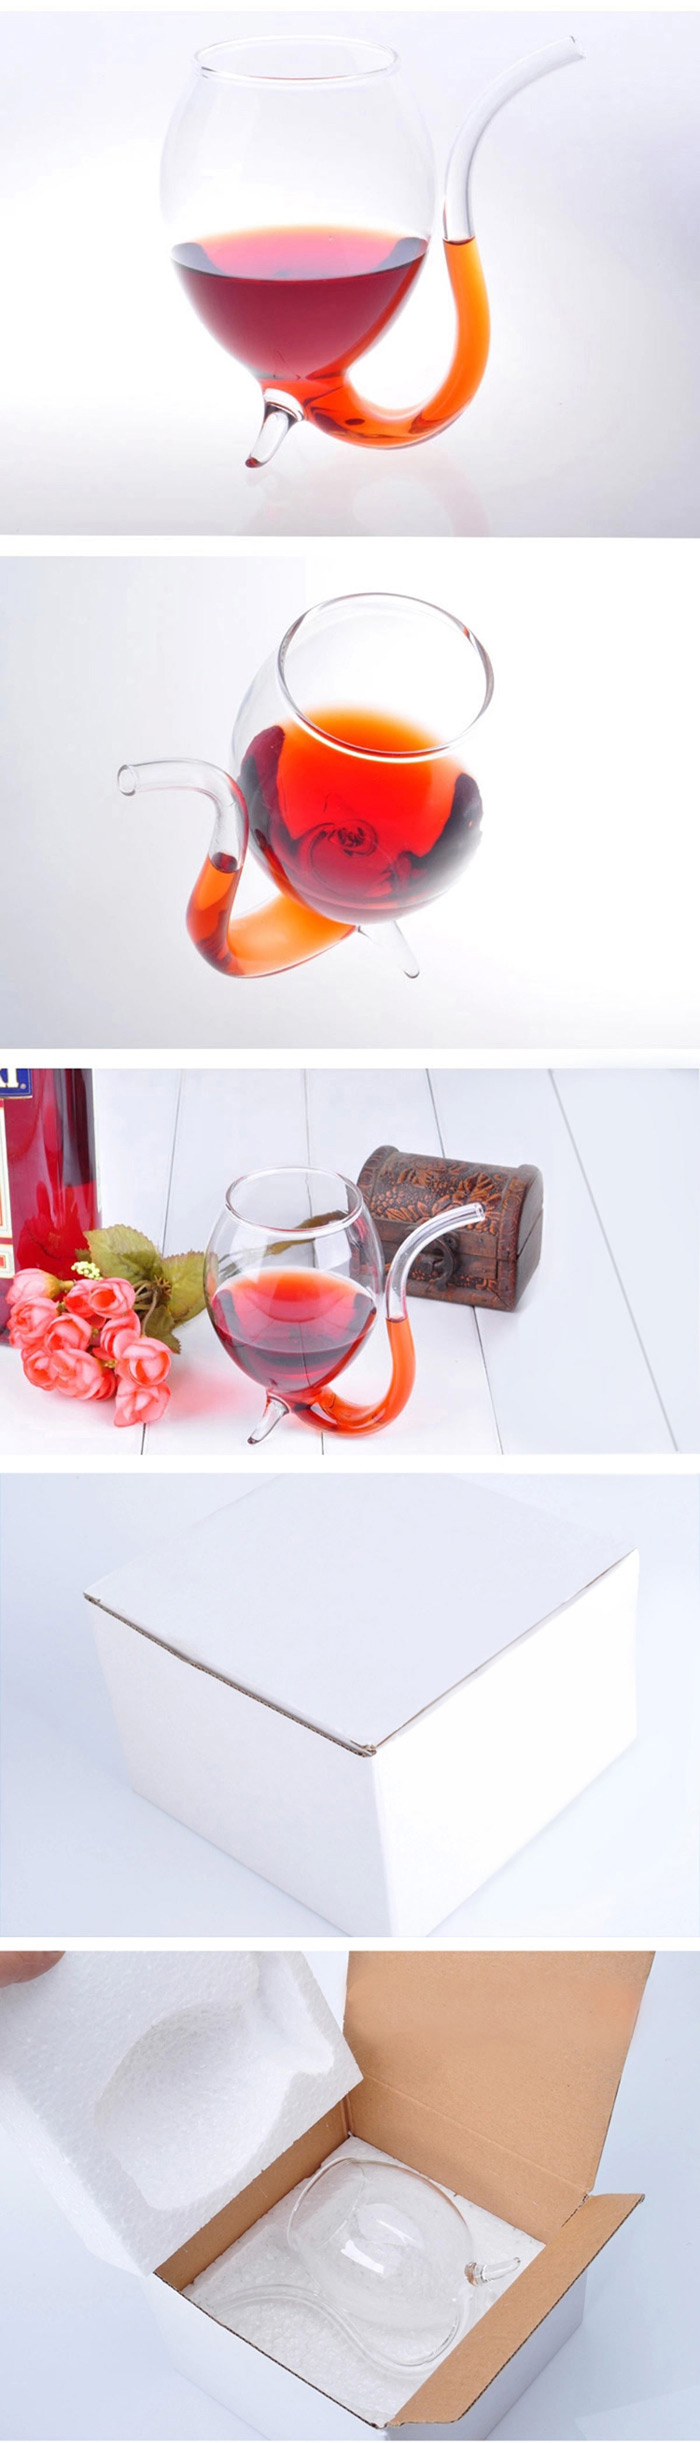 300 ML Transparent High Borosilicate Glass Novel Vampire Devil Red Wine / Juice Cup